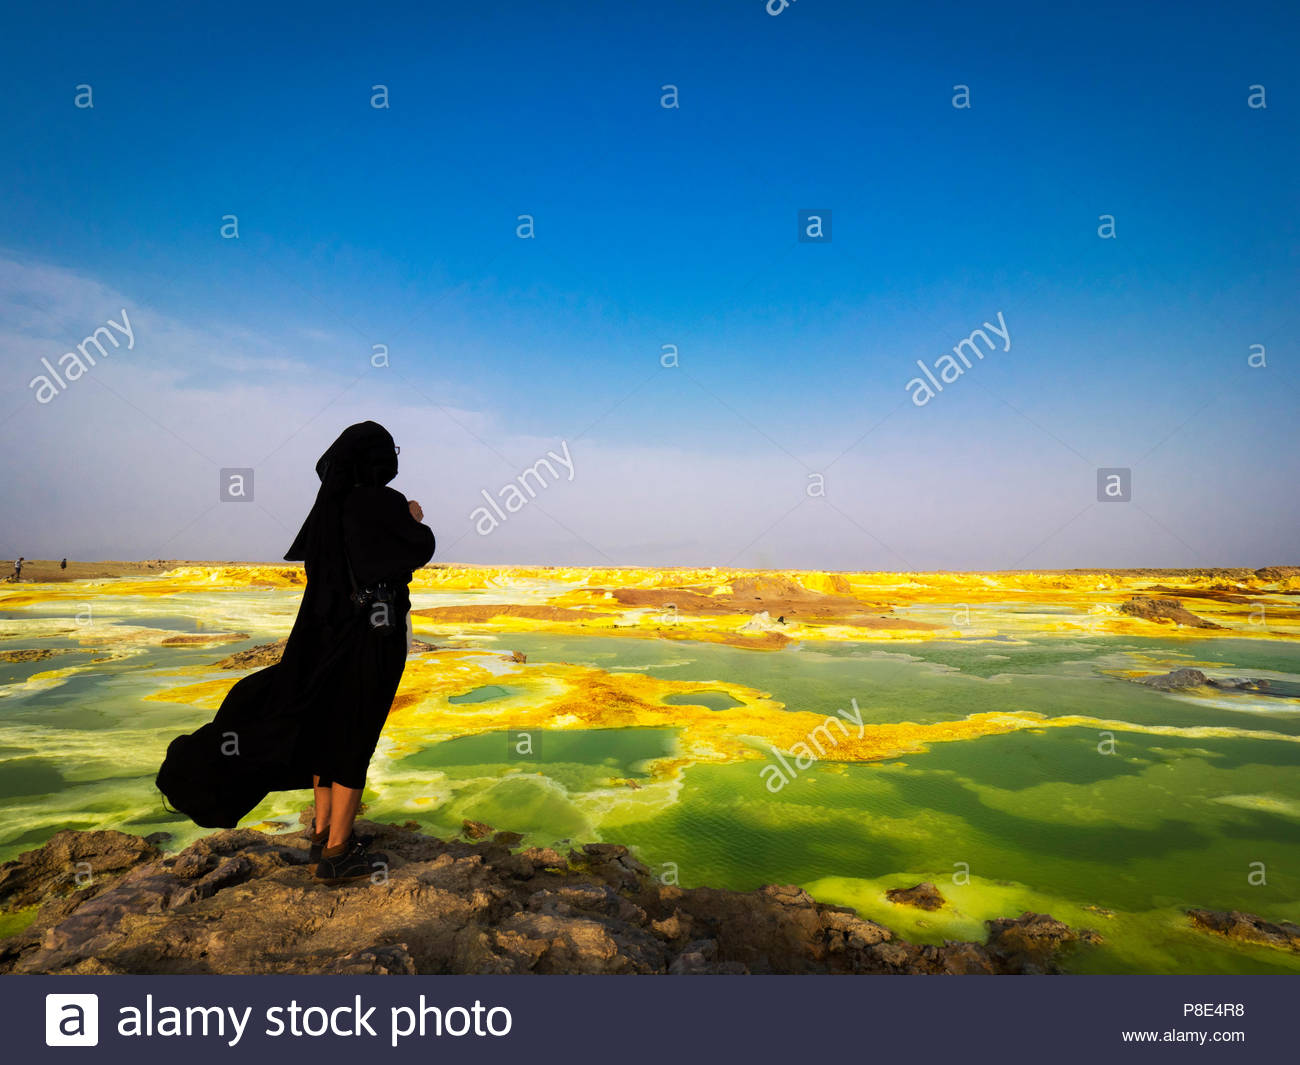 Woman with burka, geothermal area with sulphur deposits and acid salt varnishes, Dallol, Danakil Valley, Ethiopia - Stock Image